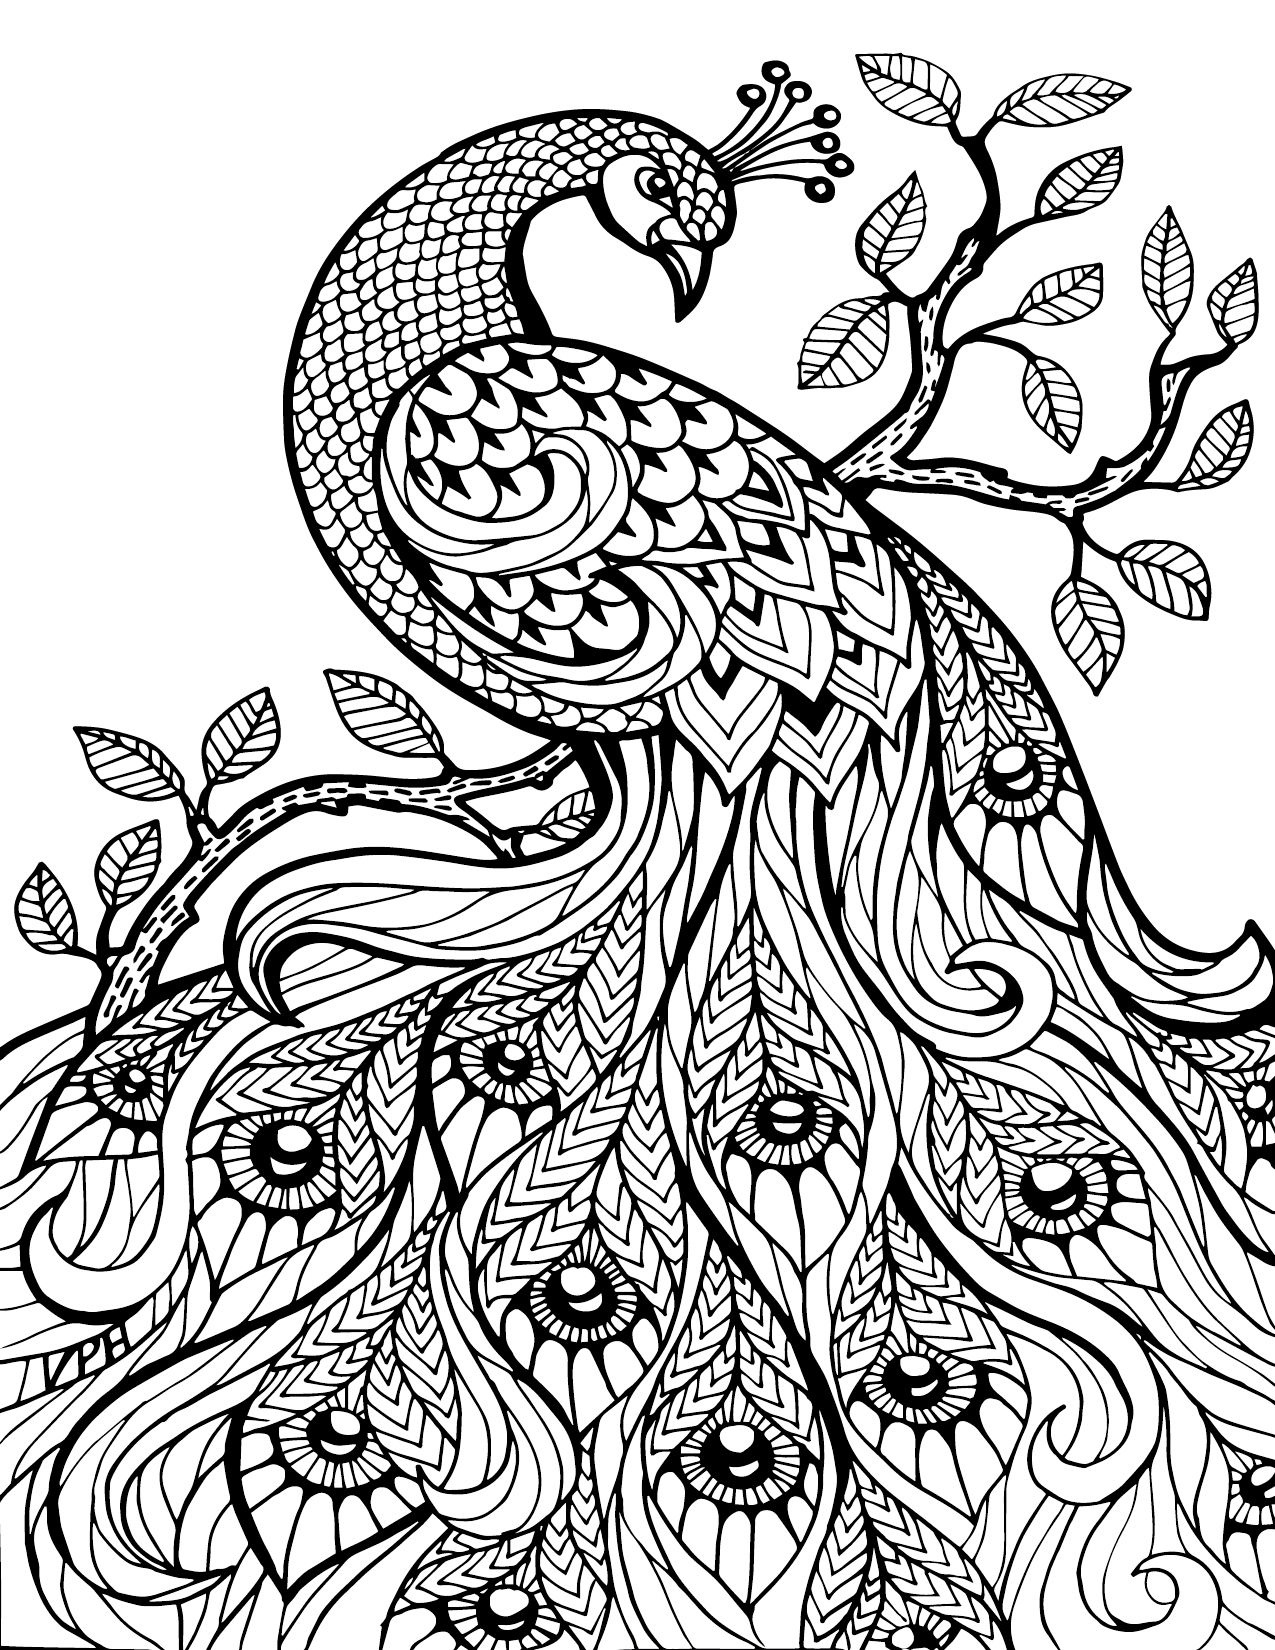 Free Printable Coloring Pages For Adults Only Image 36 Art - Free Printable Coloring Book Pages For Adults